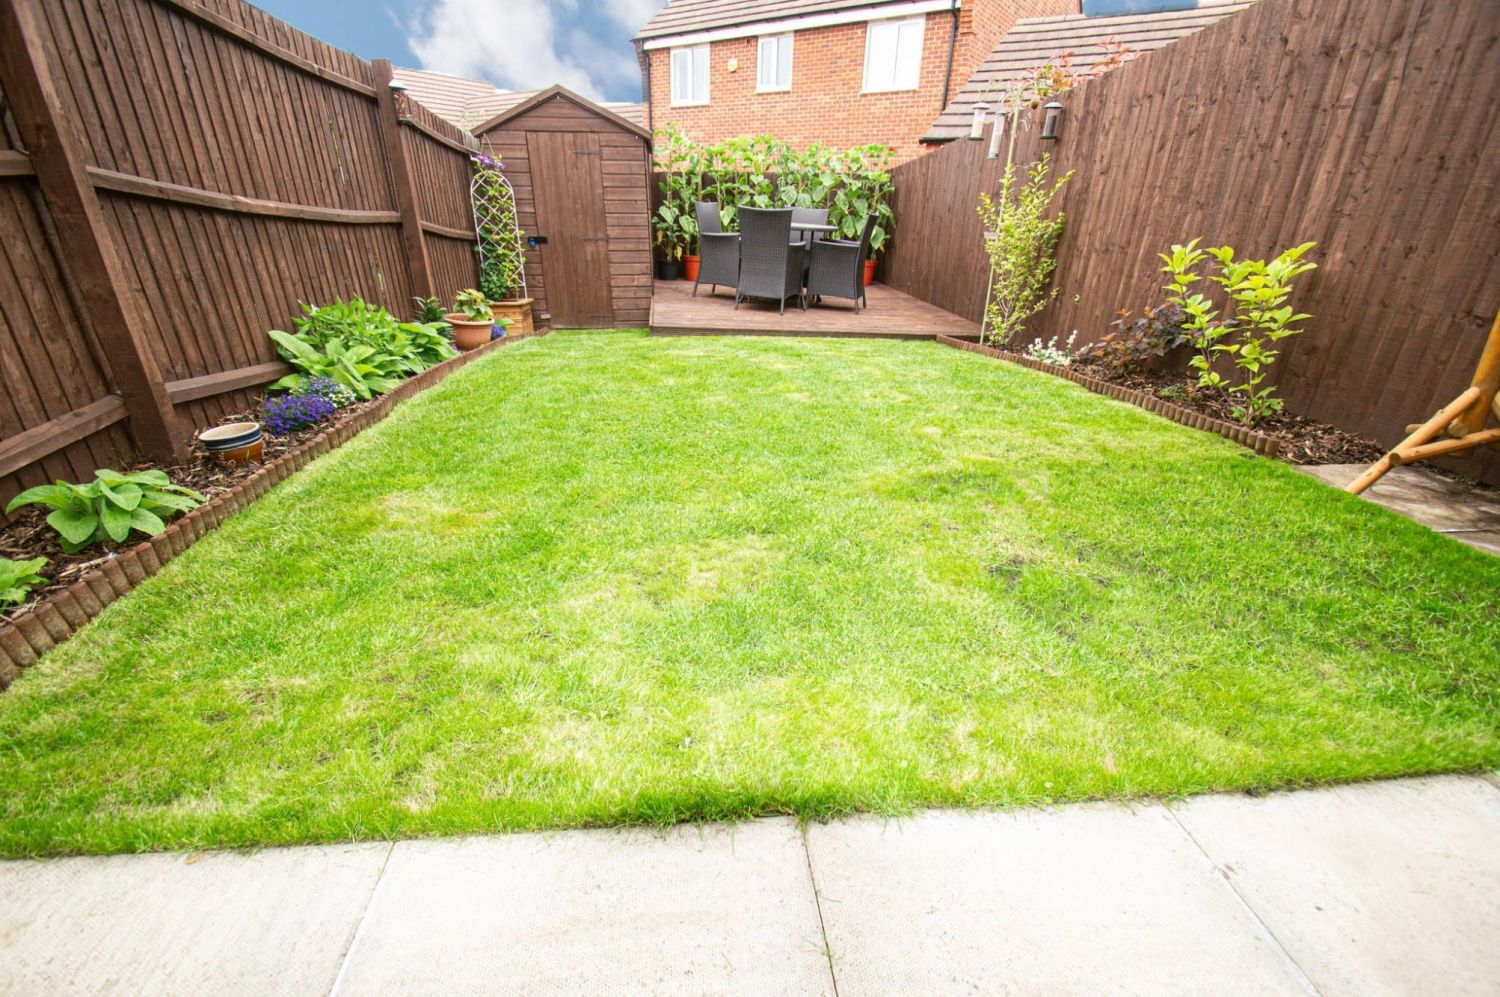 2 bed semi-detached for sale in Bobeche Place, Kingswinford  - Property Image 12